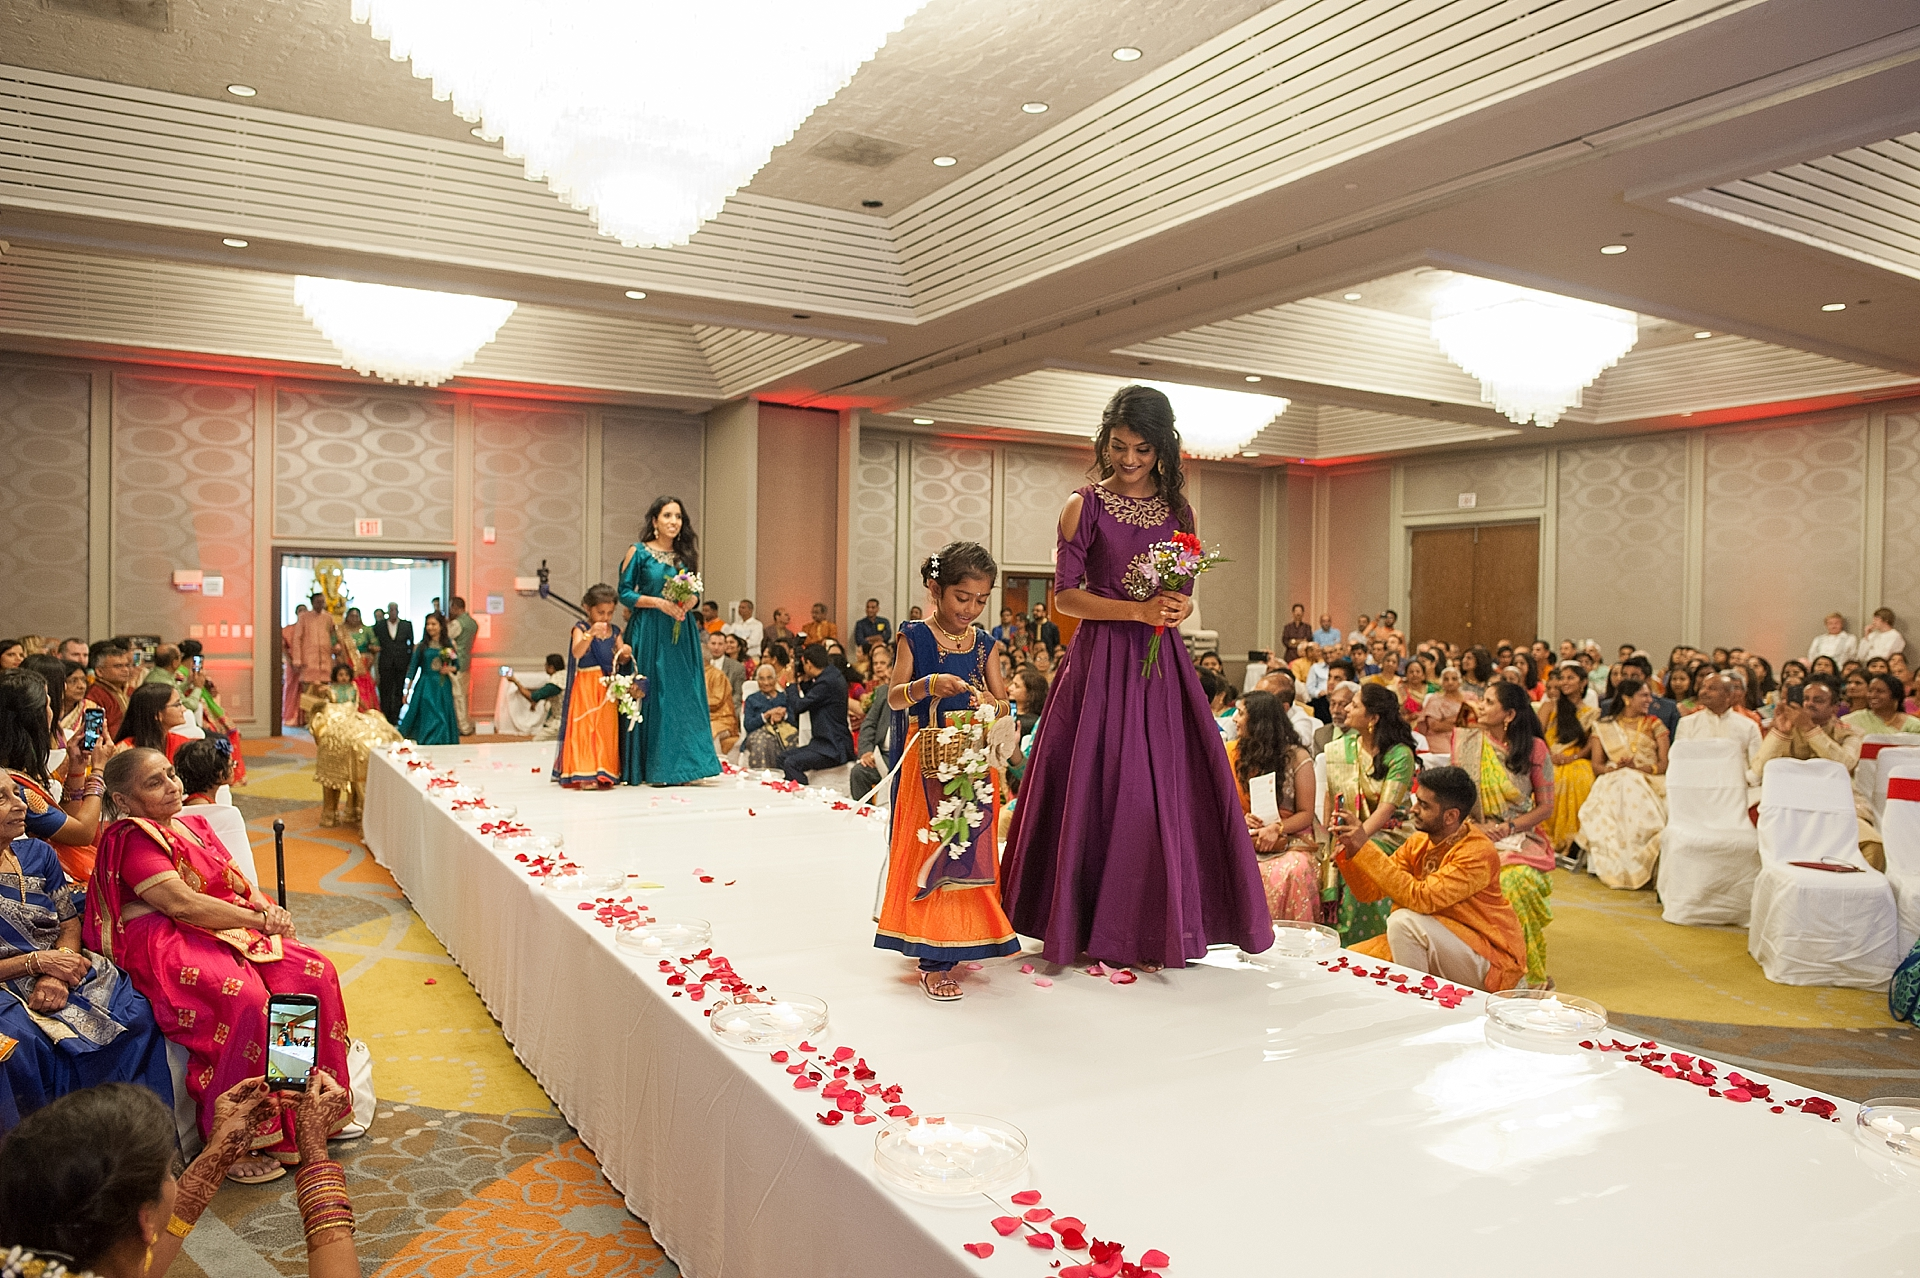 Prexa_Harry_Columbus_Crown_Plaza_Indian_Wedding0065.jpg